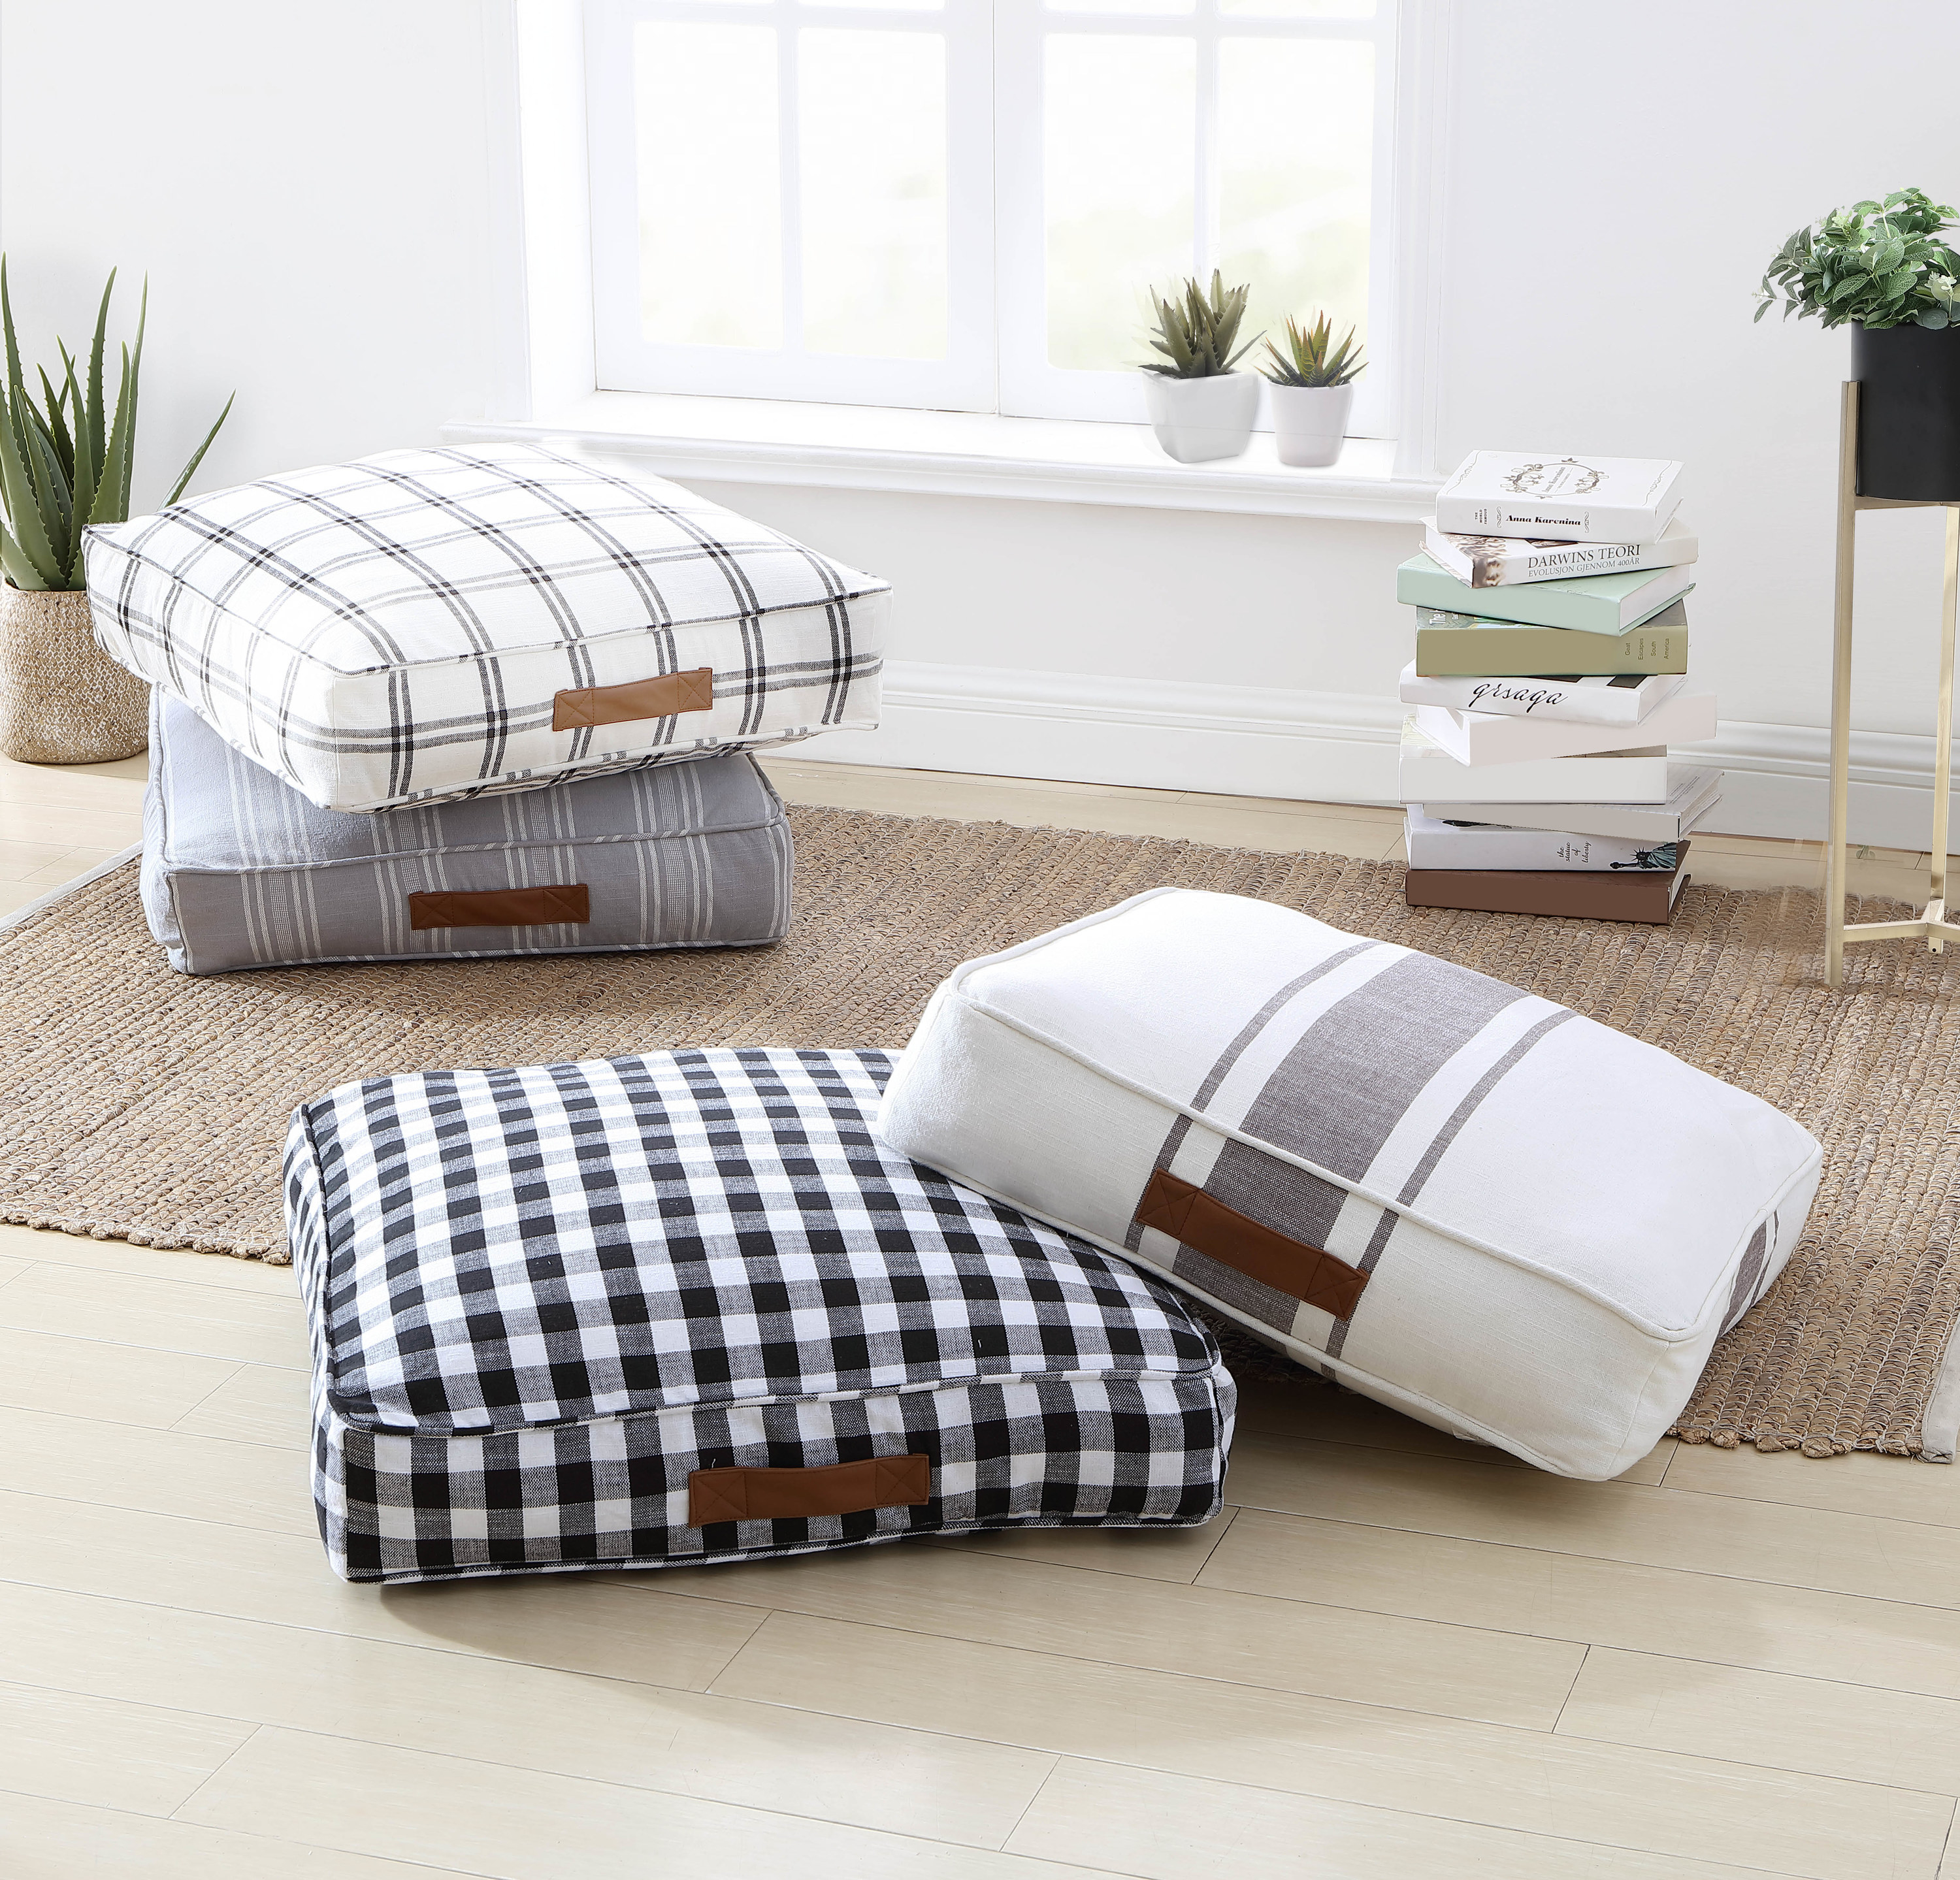 square floor pillows with checkered designs